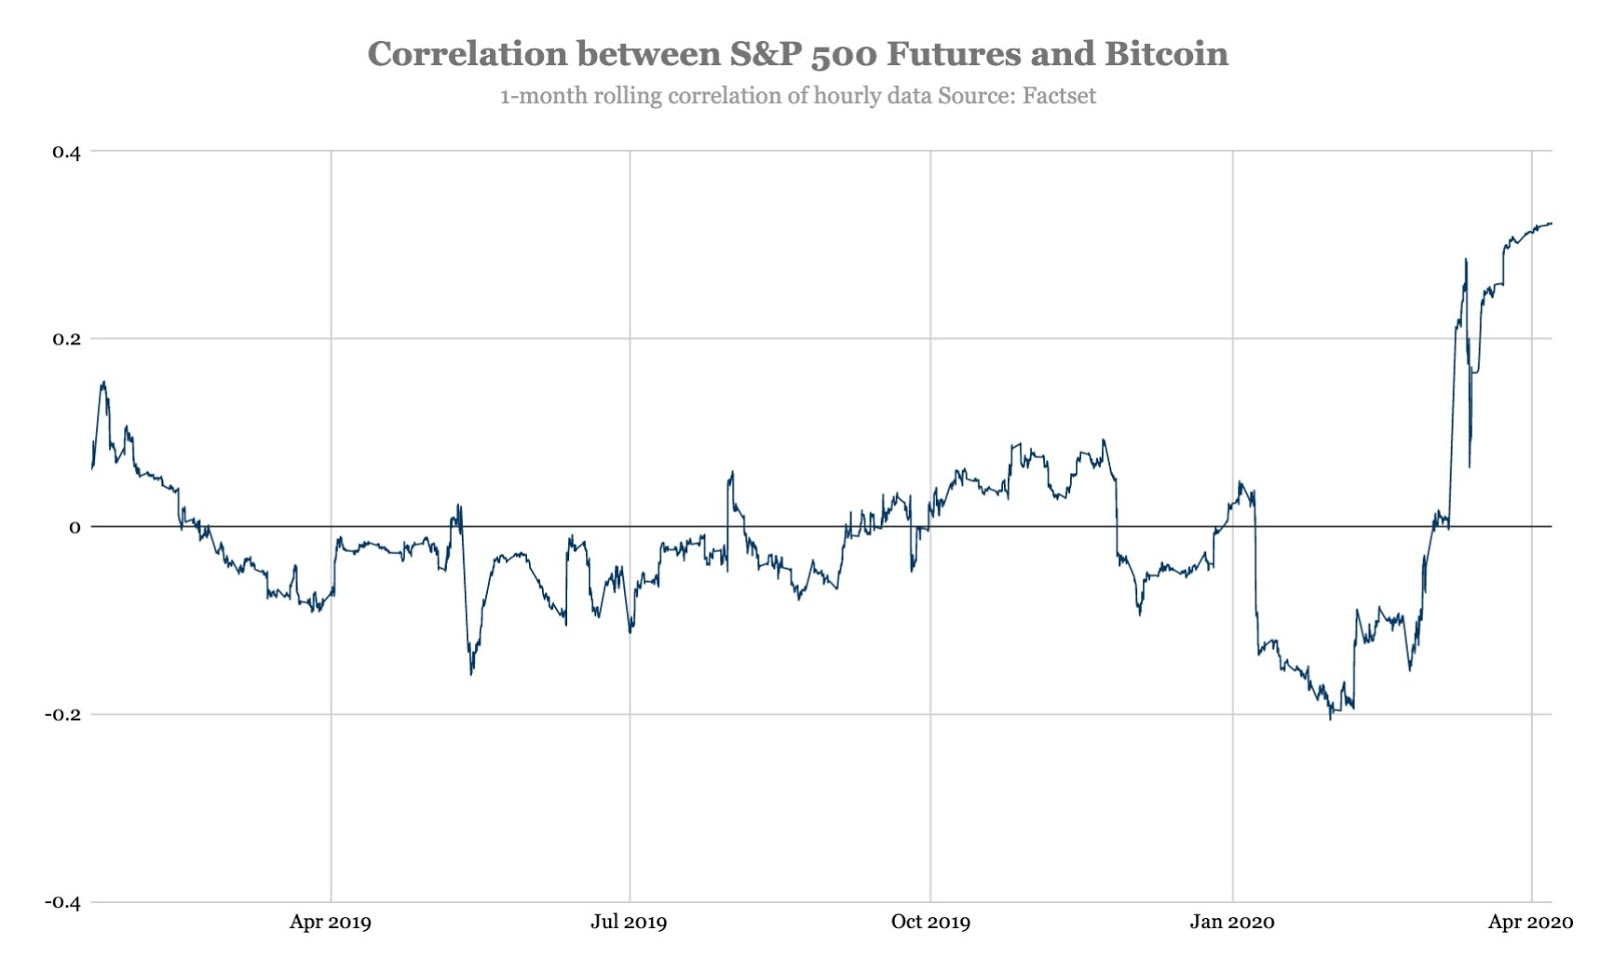 S&P 500 vs Bitcoin